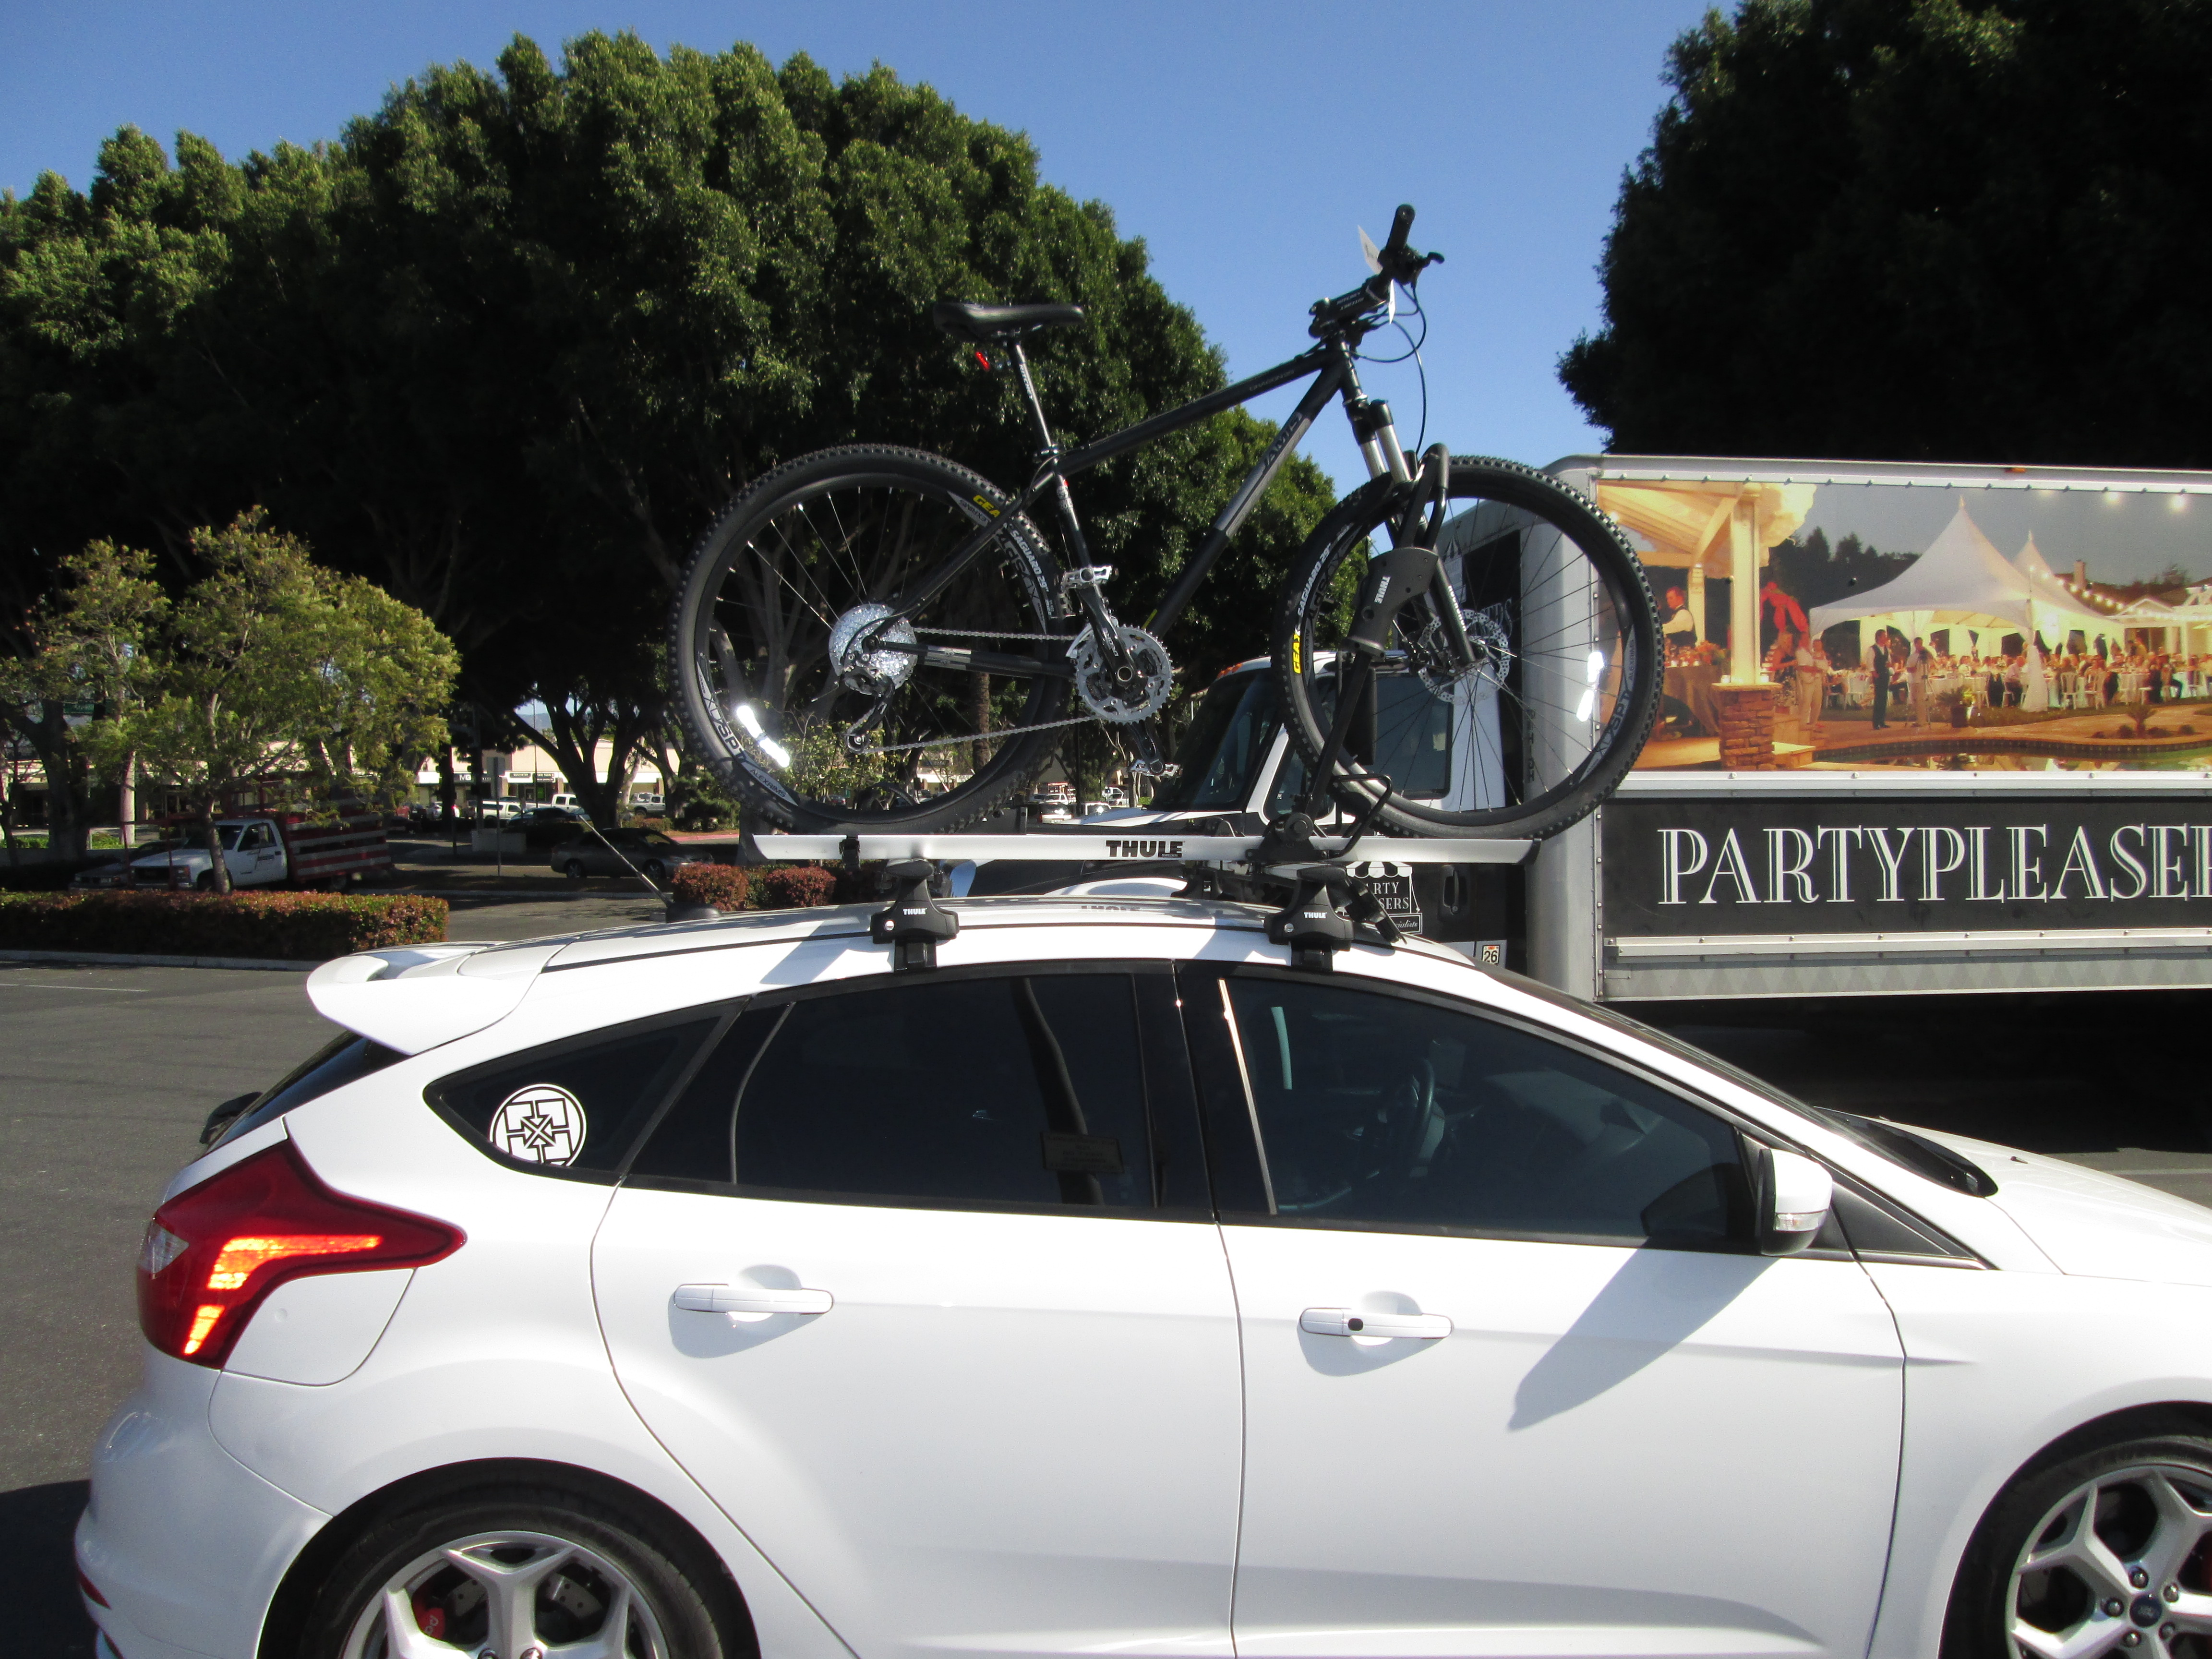 Ford Fiesta Roof Rack >> Yakima Q-Tower Roof Rack - Dubious Setup?